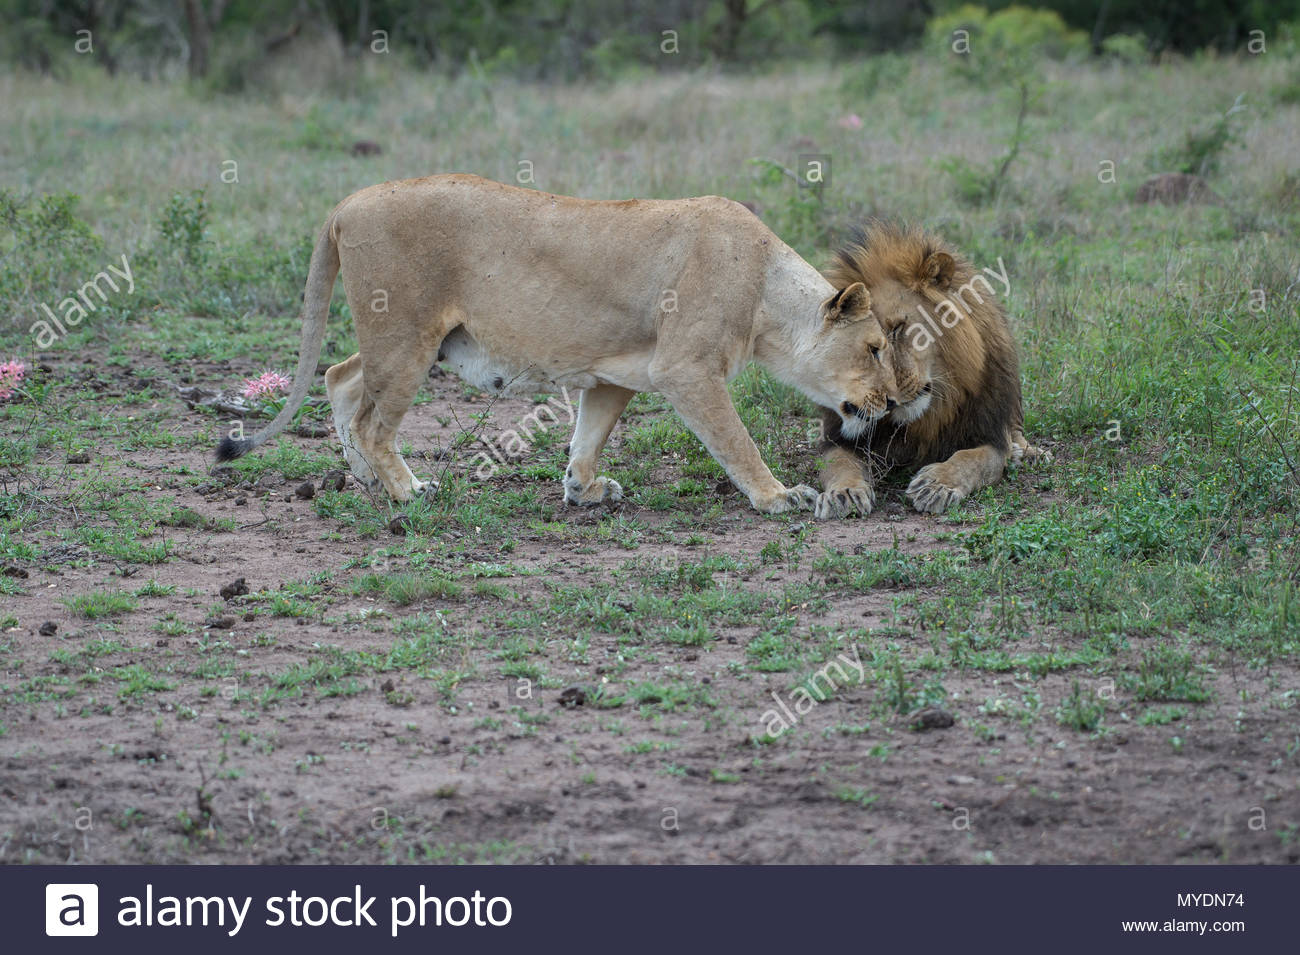 A pair of lions nuzzle. - Stock Image